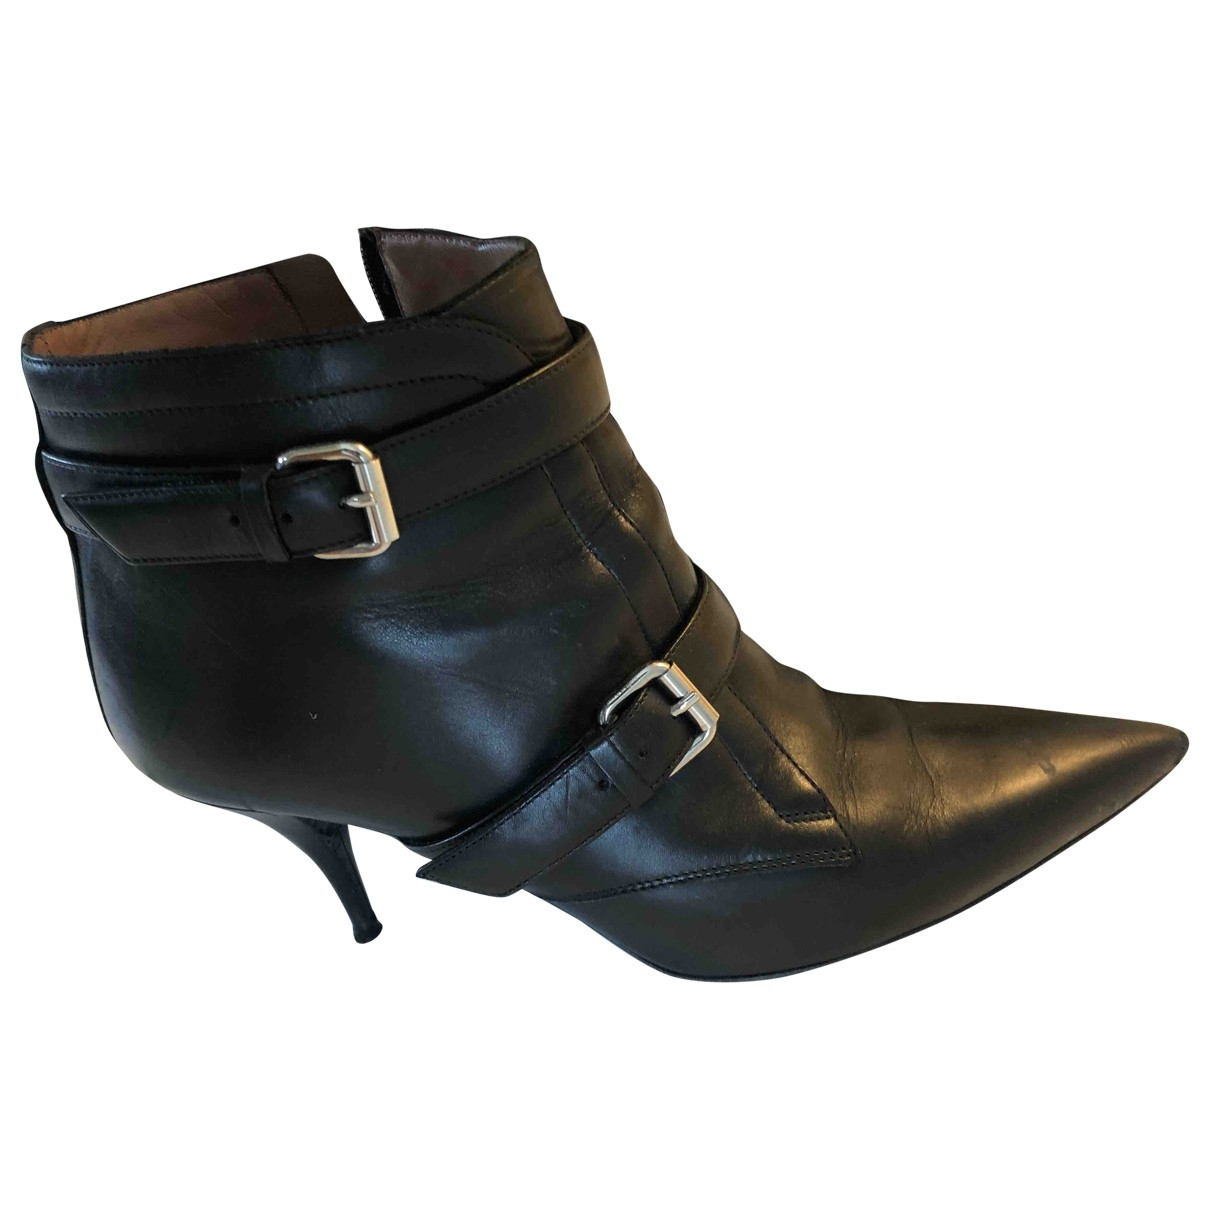 Tabitha Simmons \N Black Leather Ankle boots for Women 40.5 EU